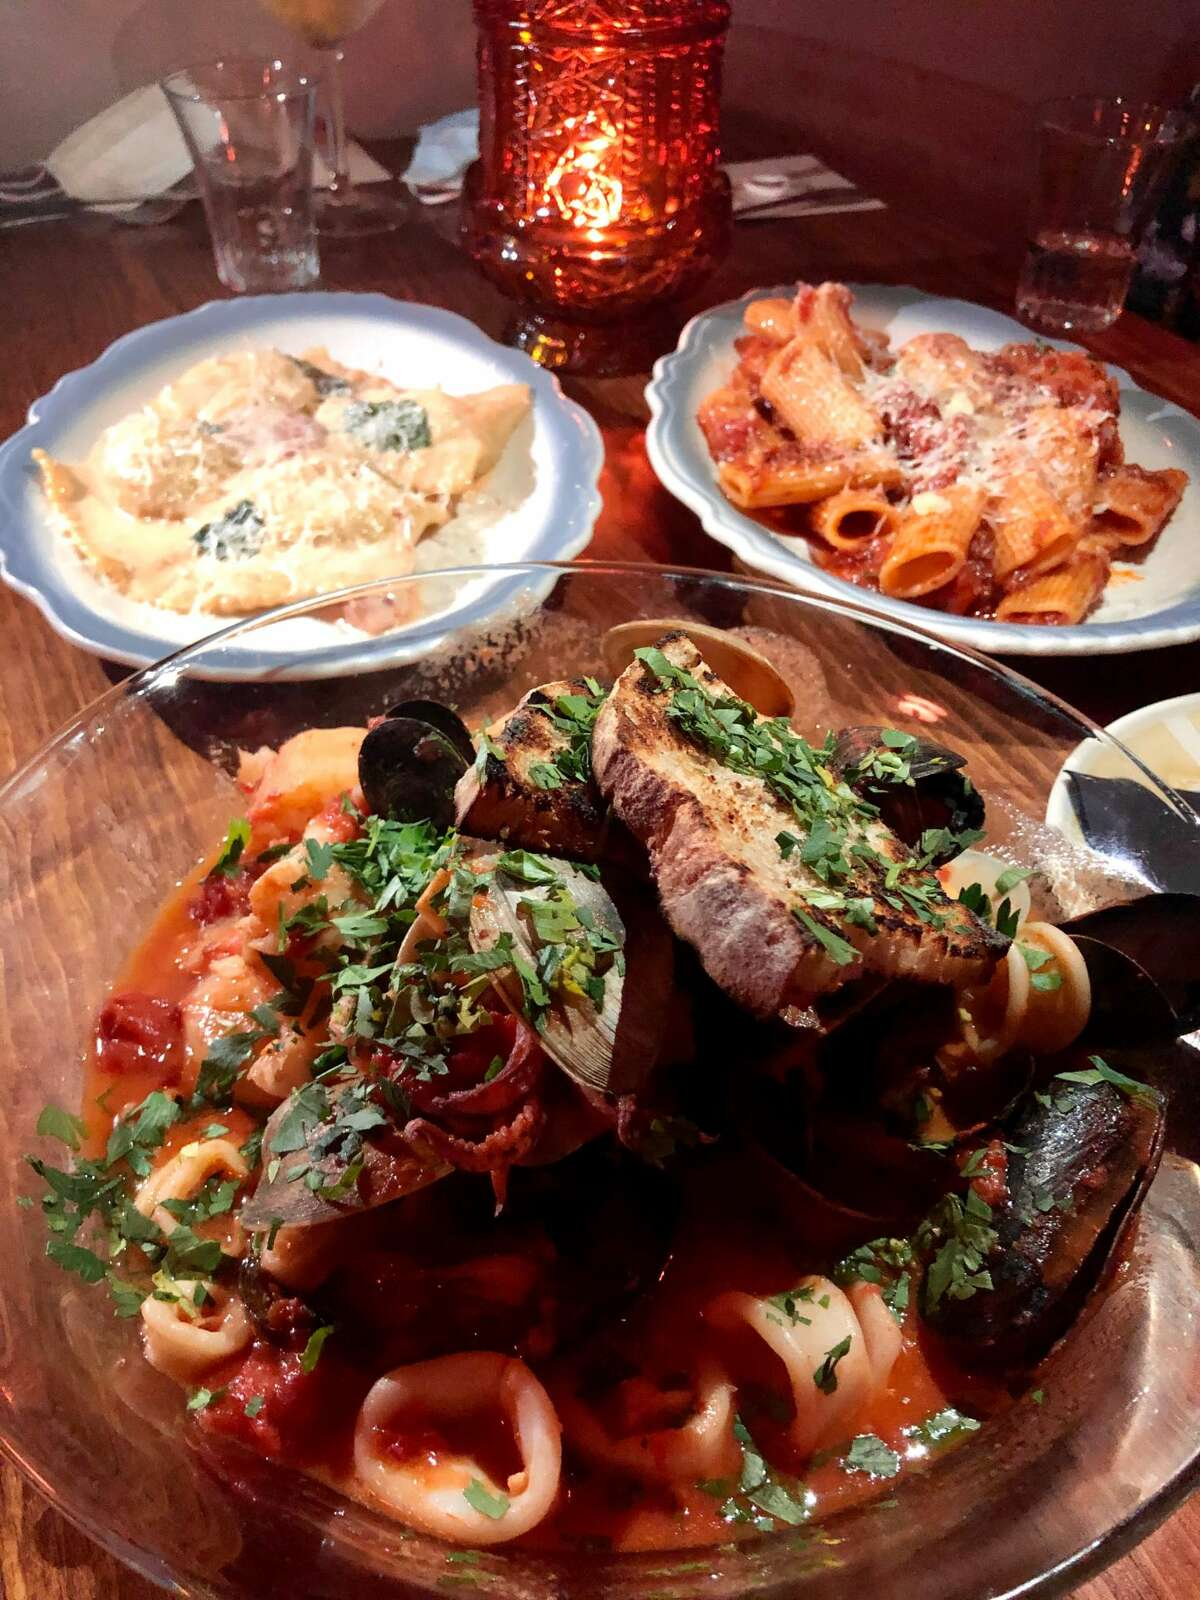 Among the savory dishes at Rosanna's in Albany are, clockwise from top, ravioli alla Rosanna, pasta Bolognese and zuppa di pesce. (Photo by Susie Davidson Powell for the Times Union.)